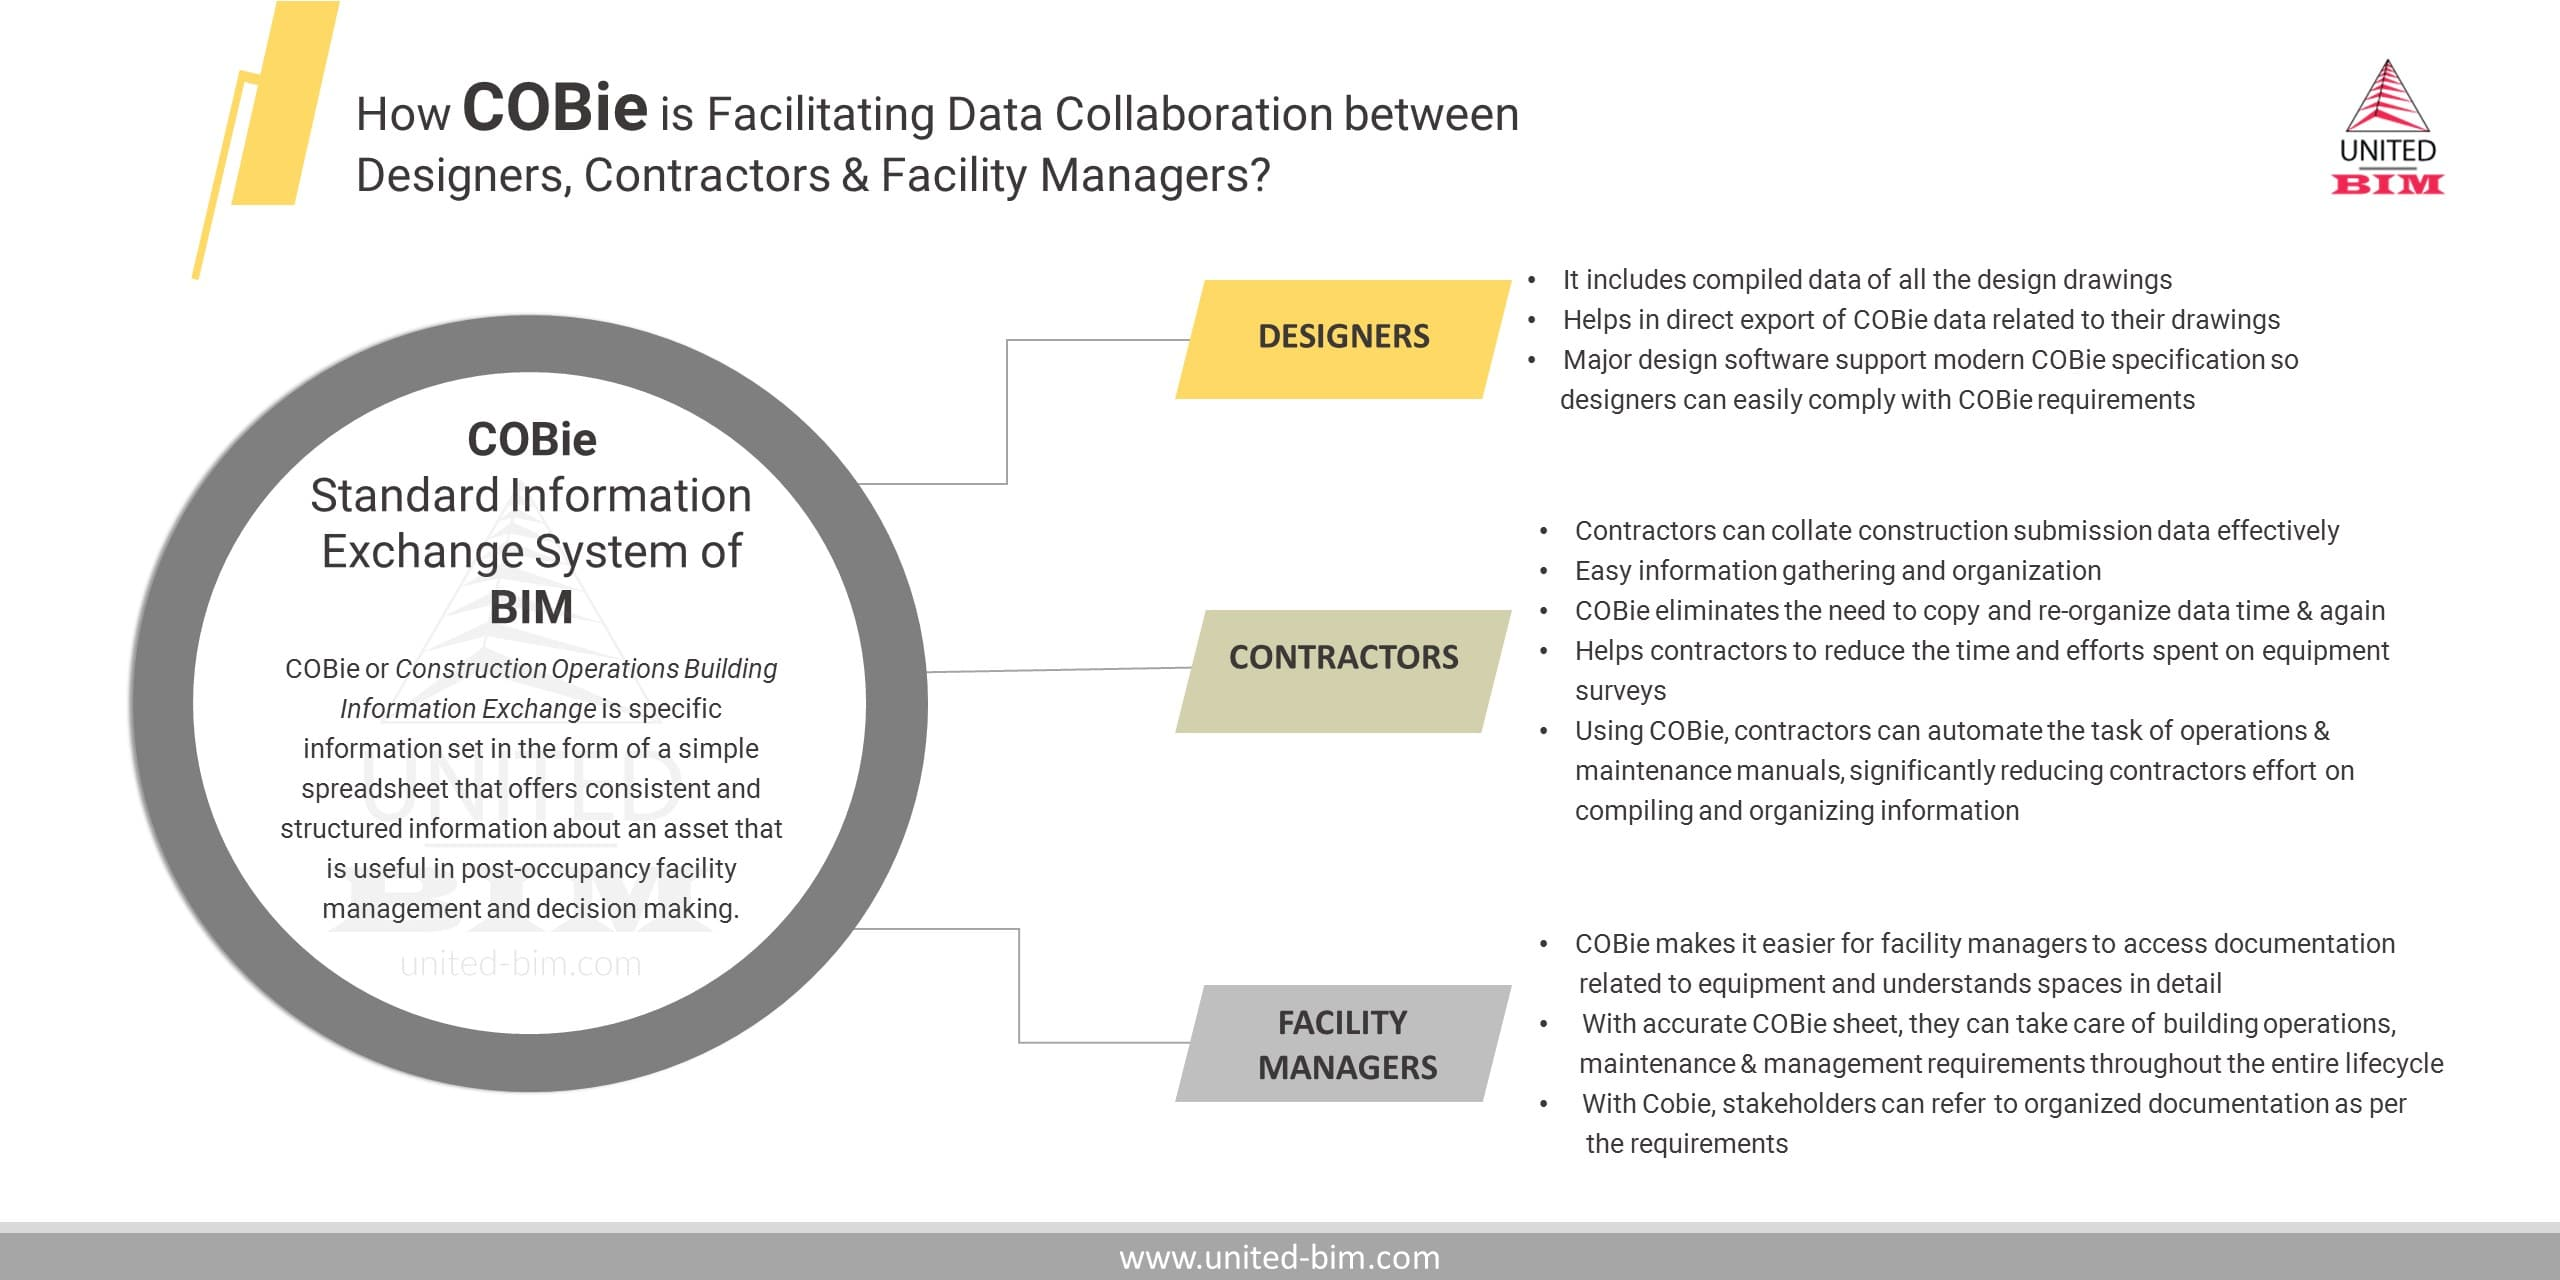 COBie-How it is facilitating data collaboration between Designers, Contractors & Facility Managers